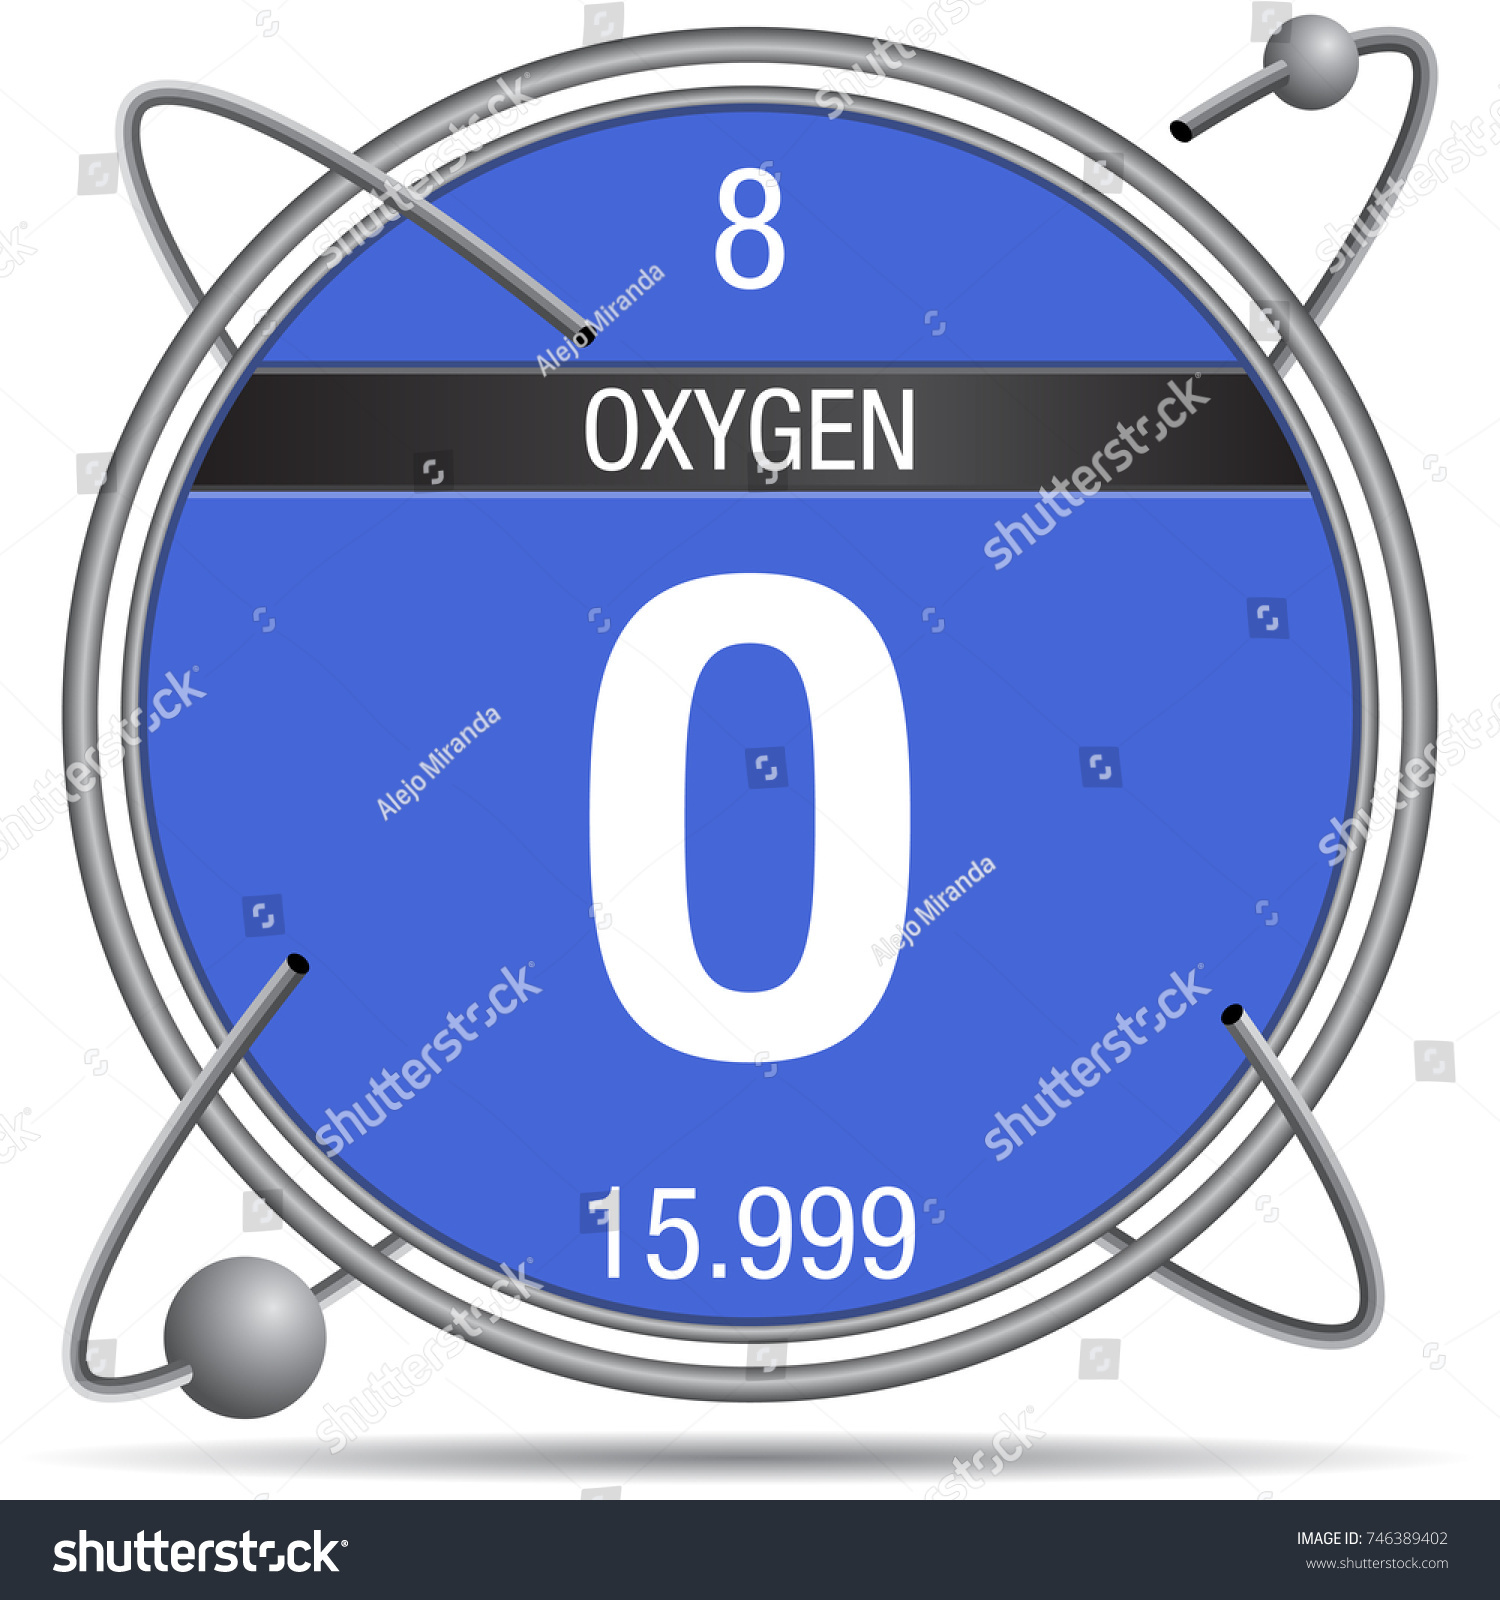 Oxygen symbol inside metal ring colored stock vector 746389402 oxygen symbol inside a metal ring with colored background and spheres orbiting around element number buycottarizona Choice Image